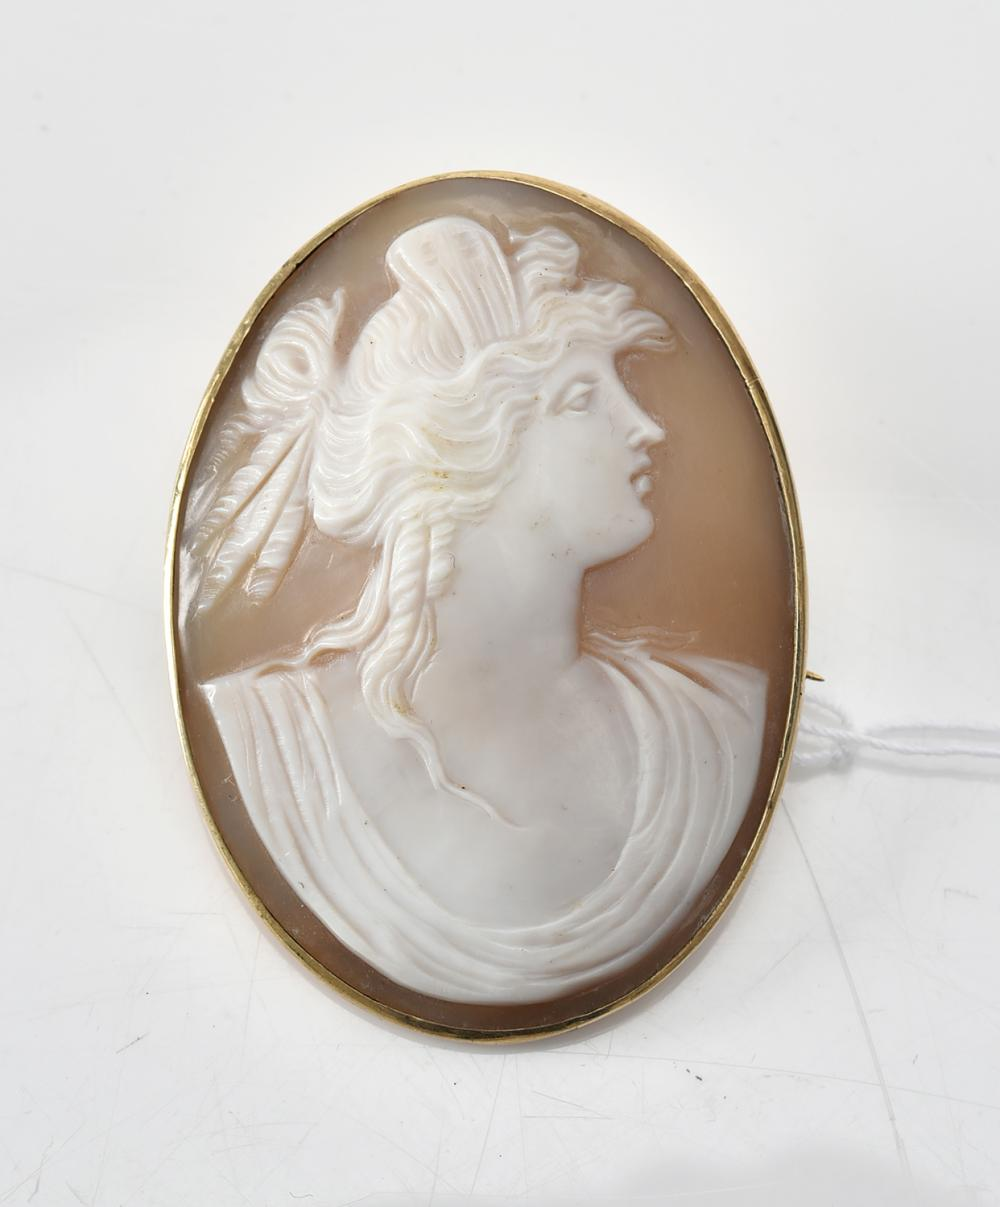 A SHELL CAMEO IN 9CT GOLD, HALLMARKED